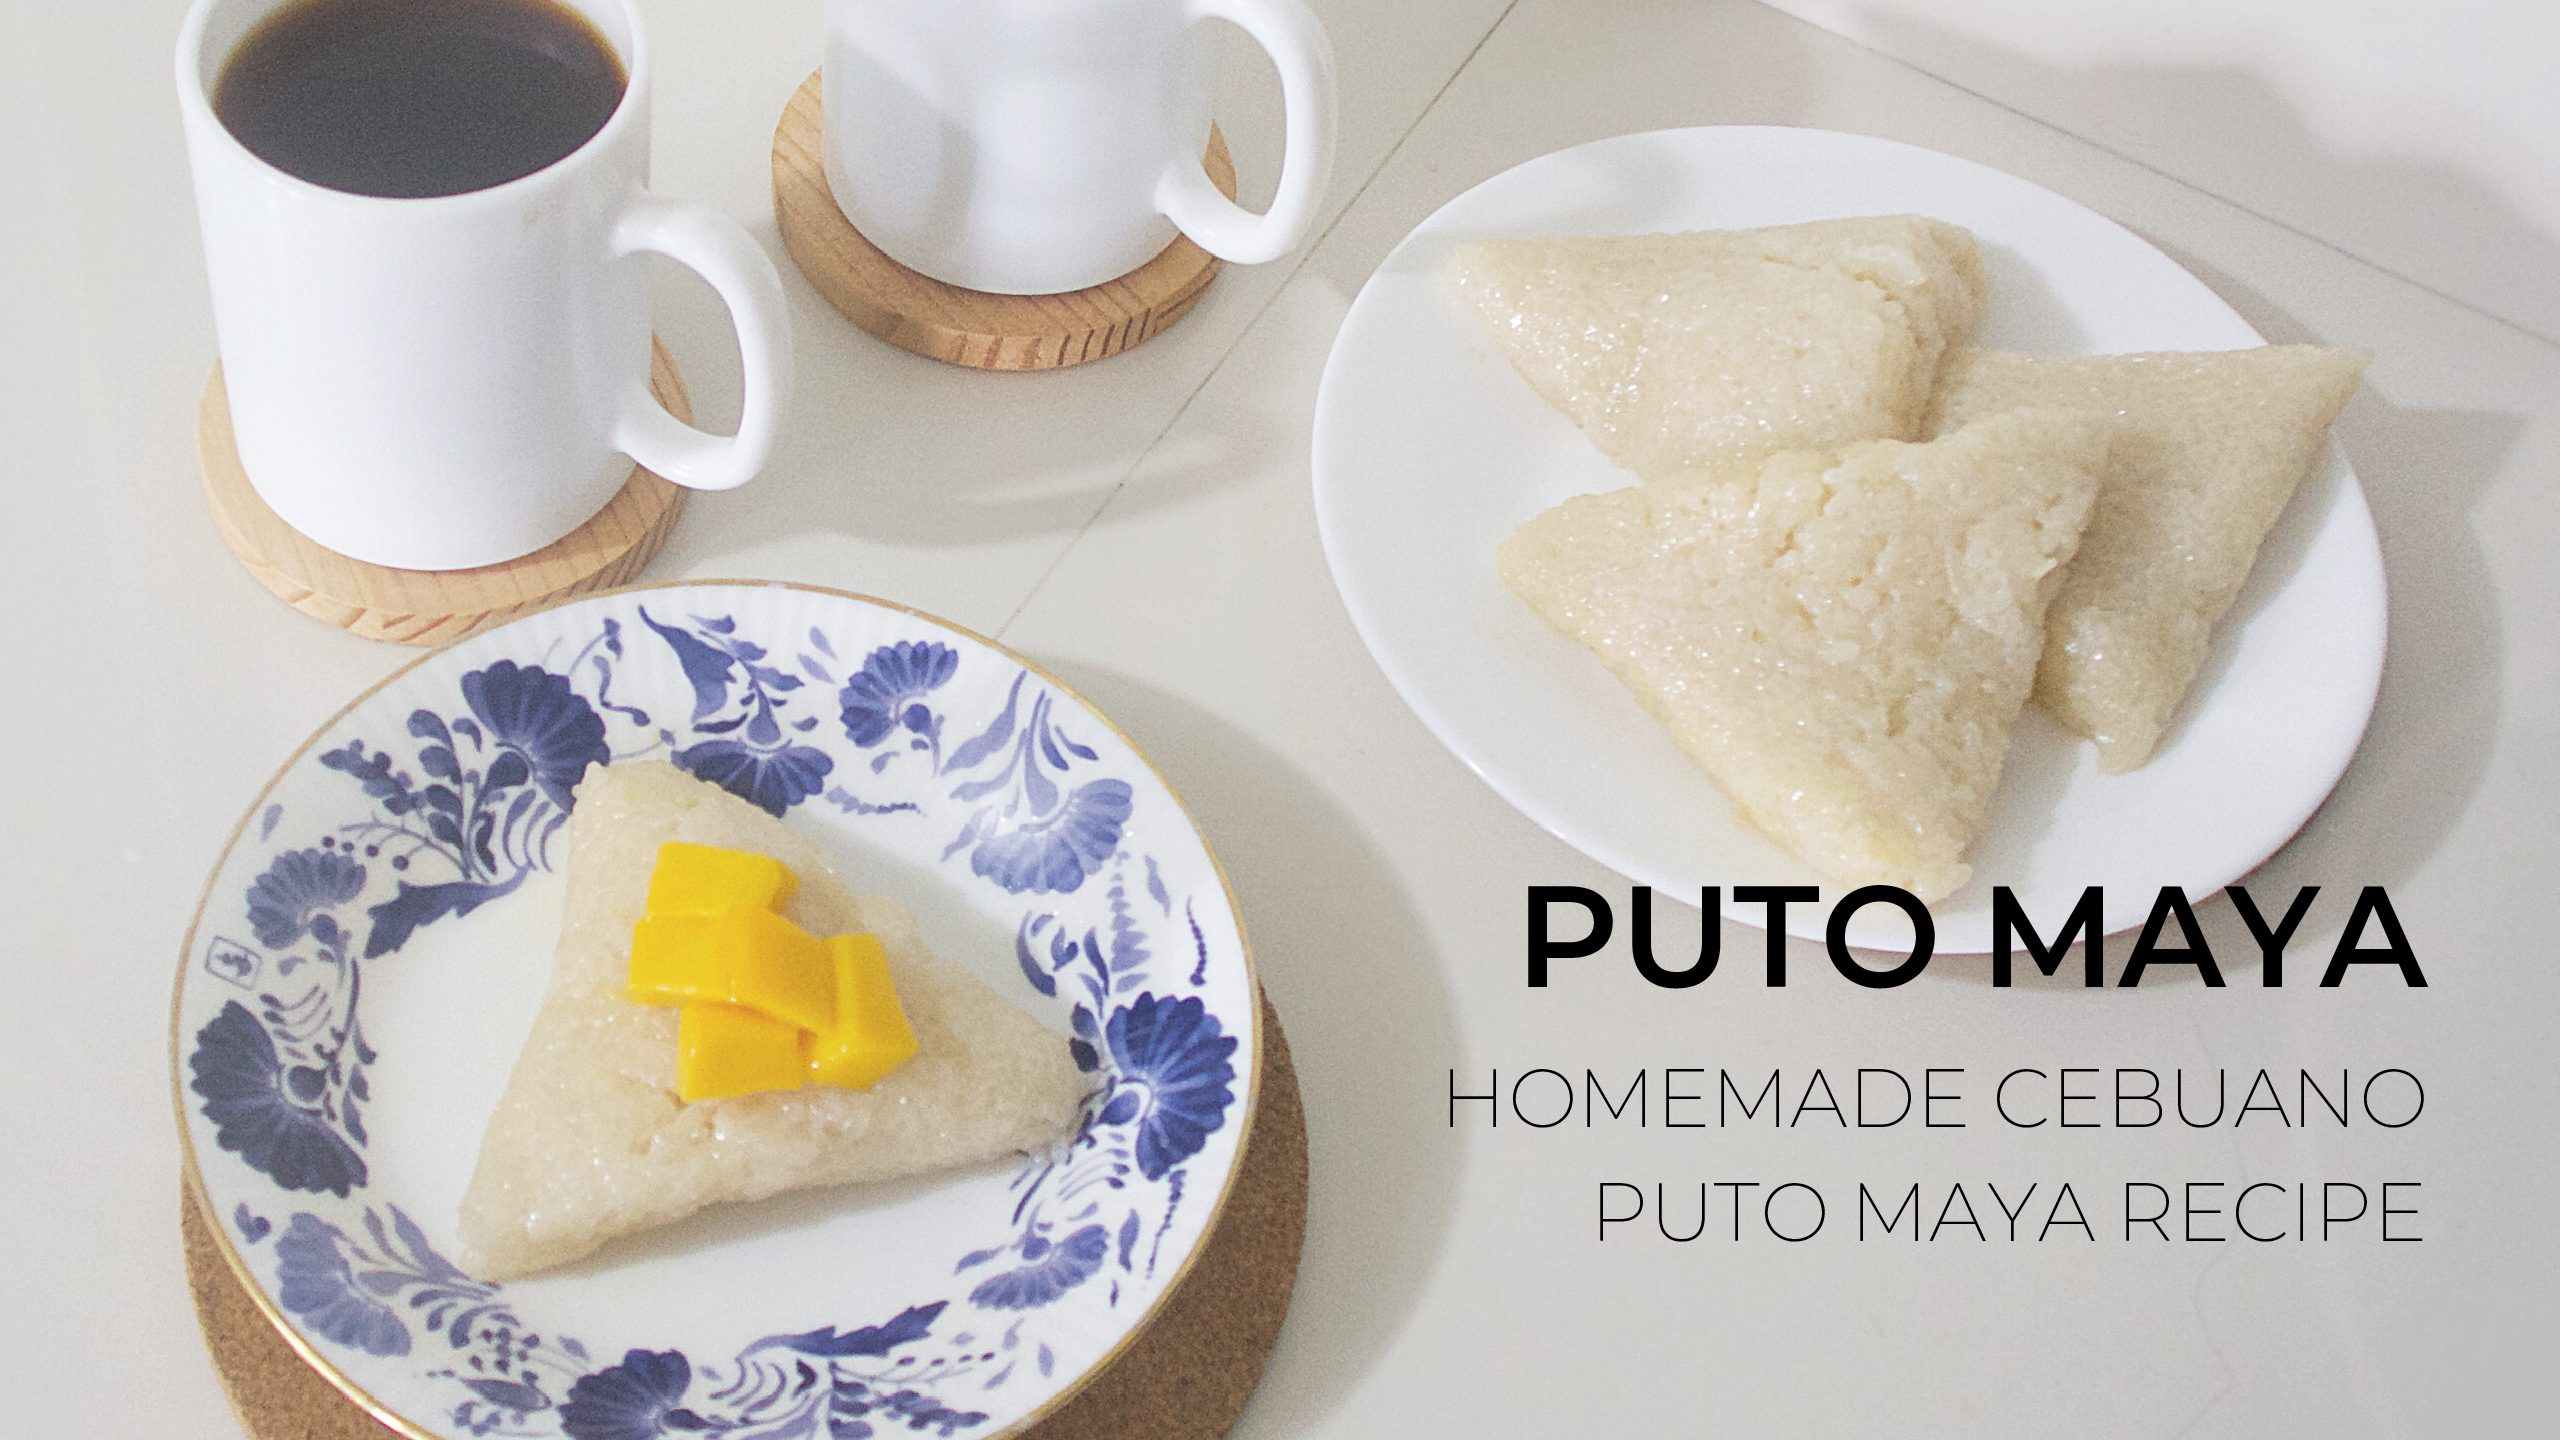 Homemade Cebuano Puto Maya Recipe